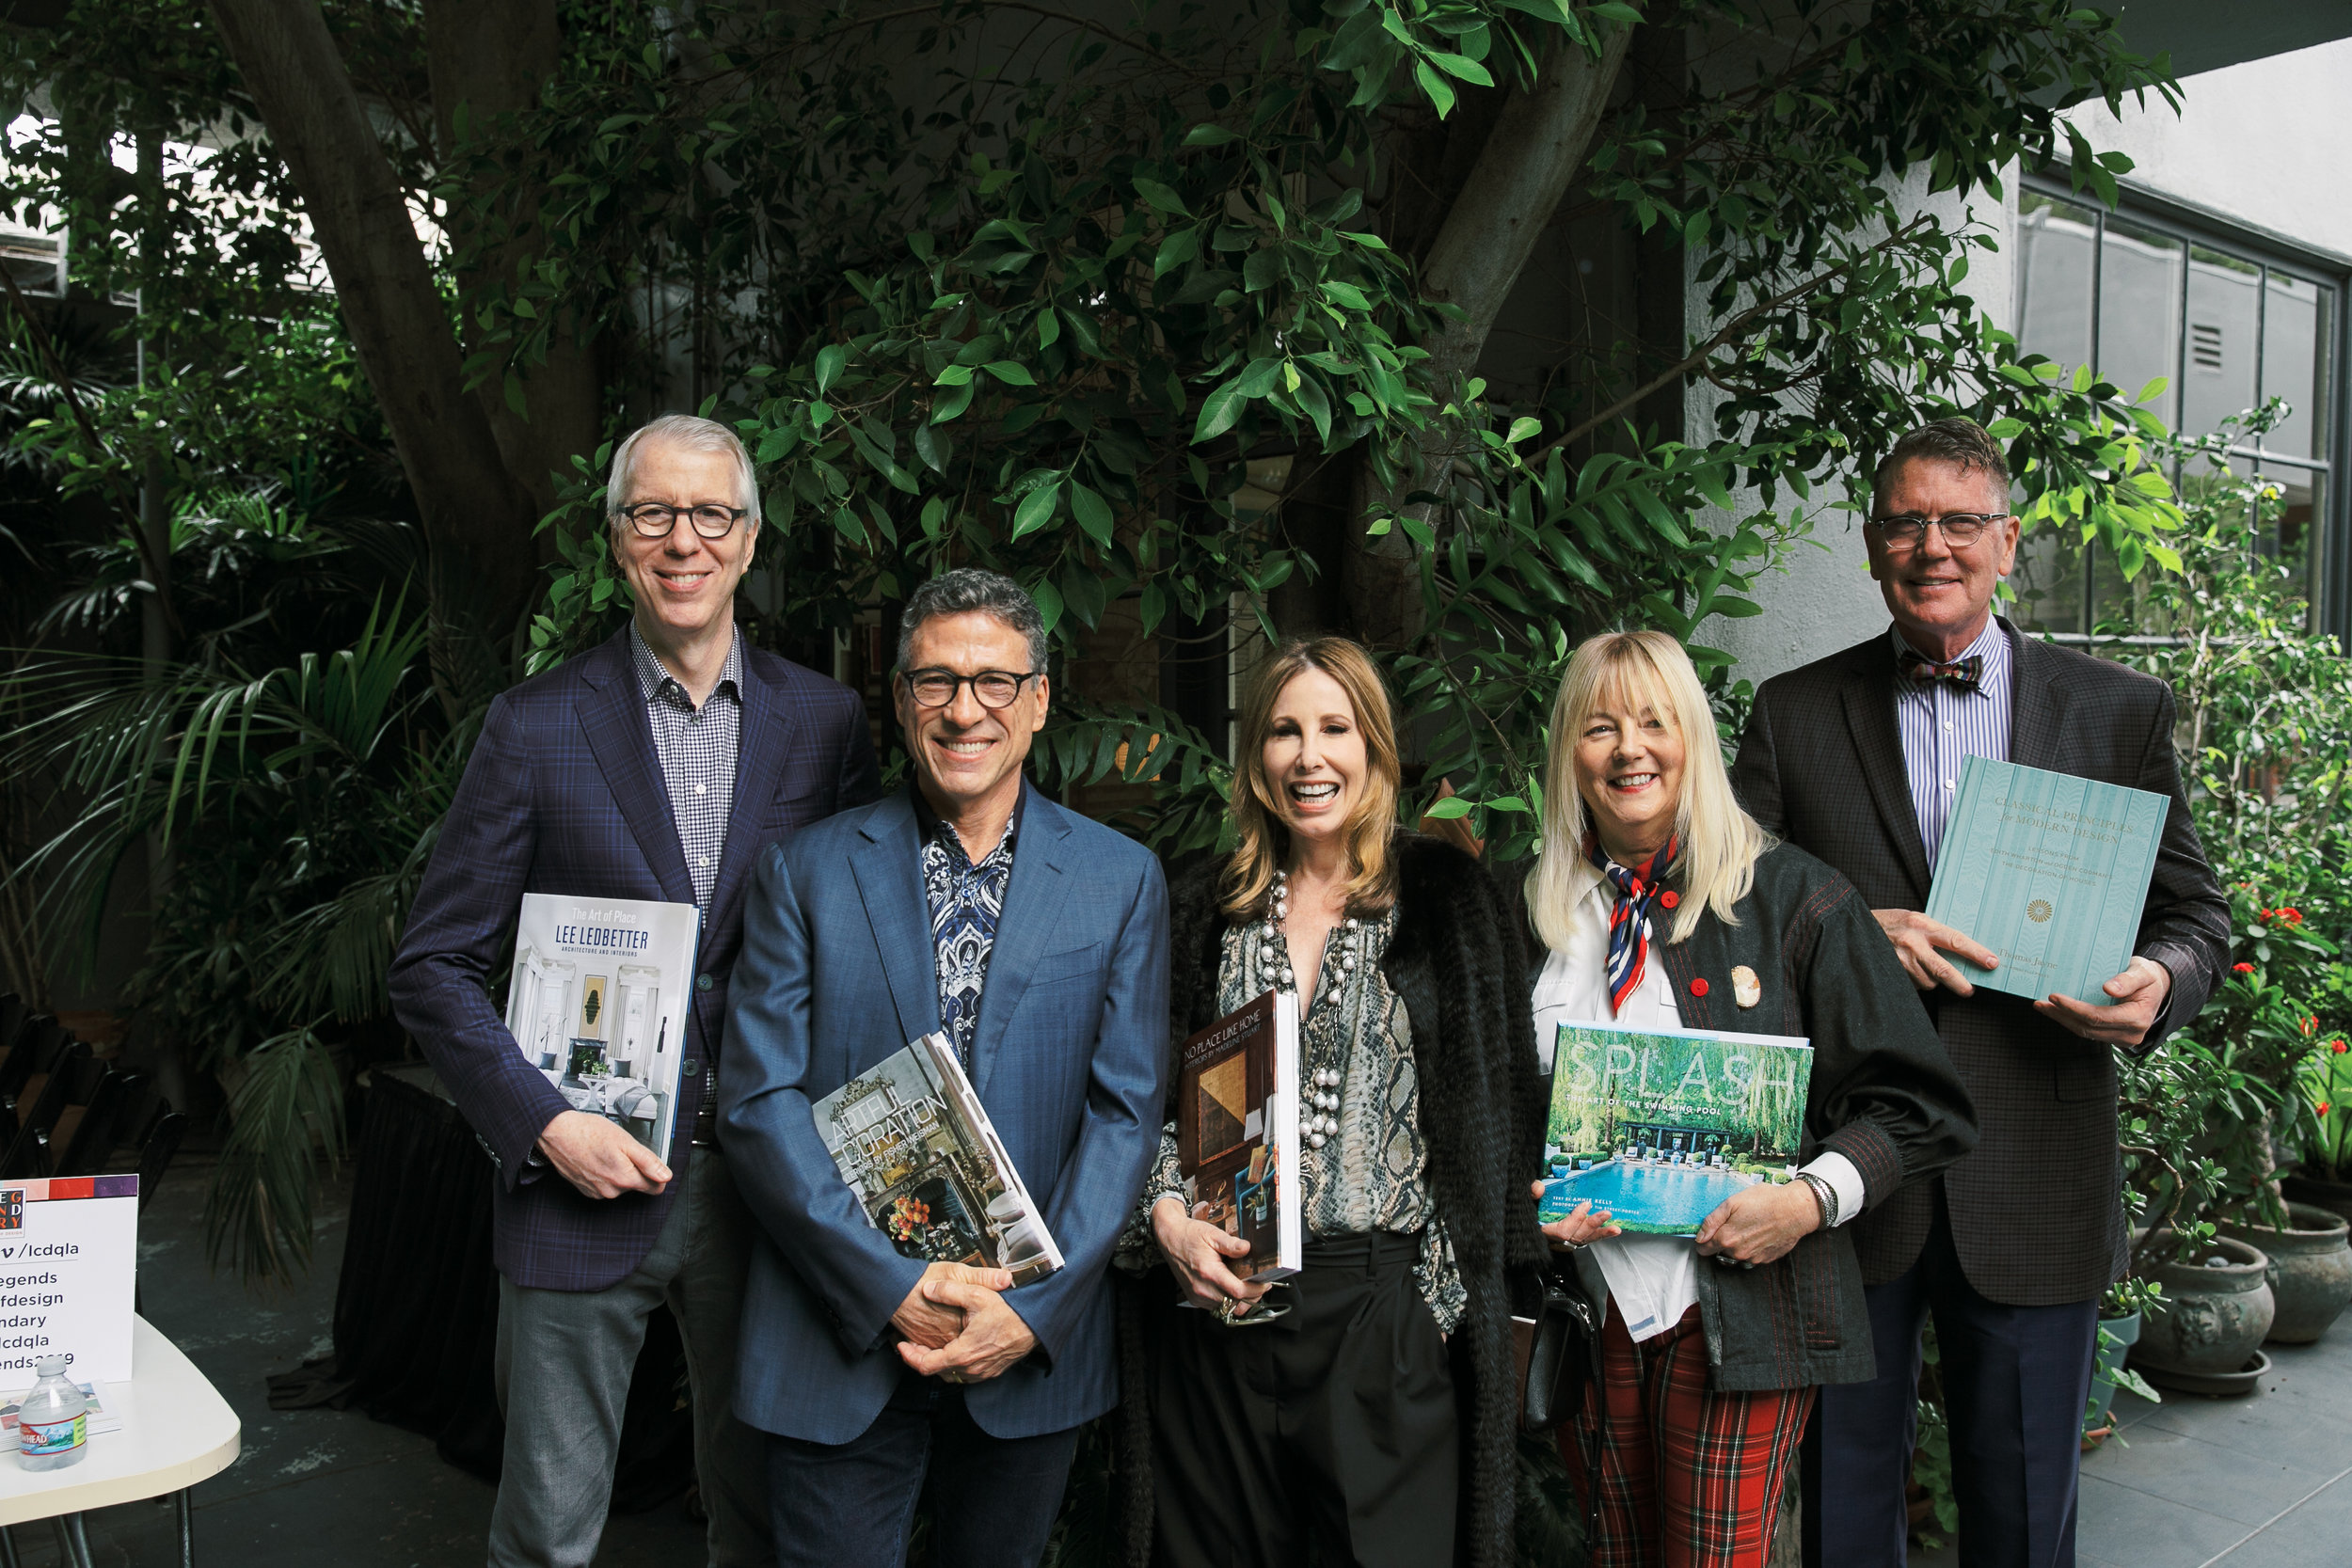 Design talent with their tomes: Jayne, Weisman, Stuart, Kelly, and Ledbetter.